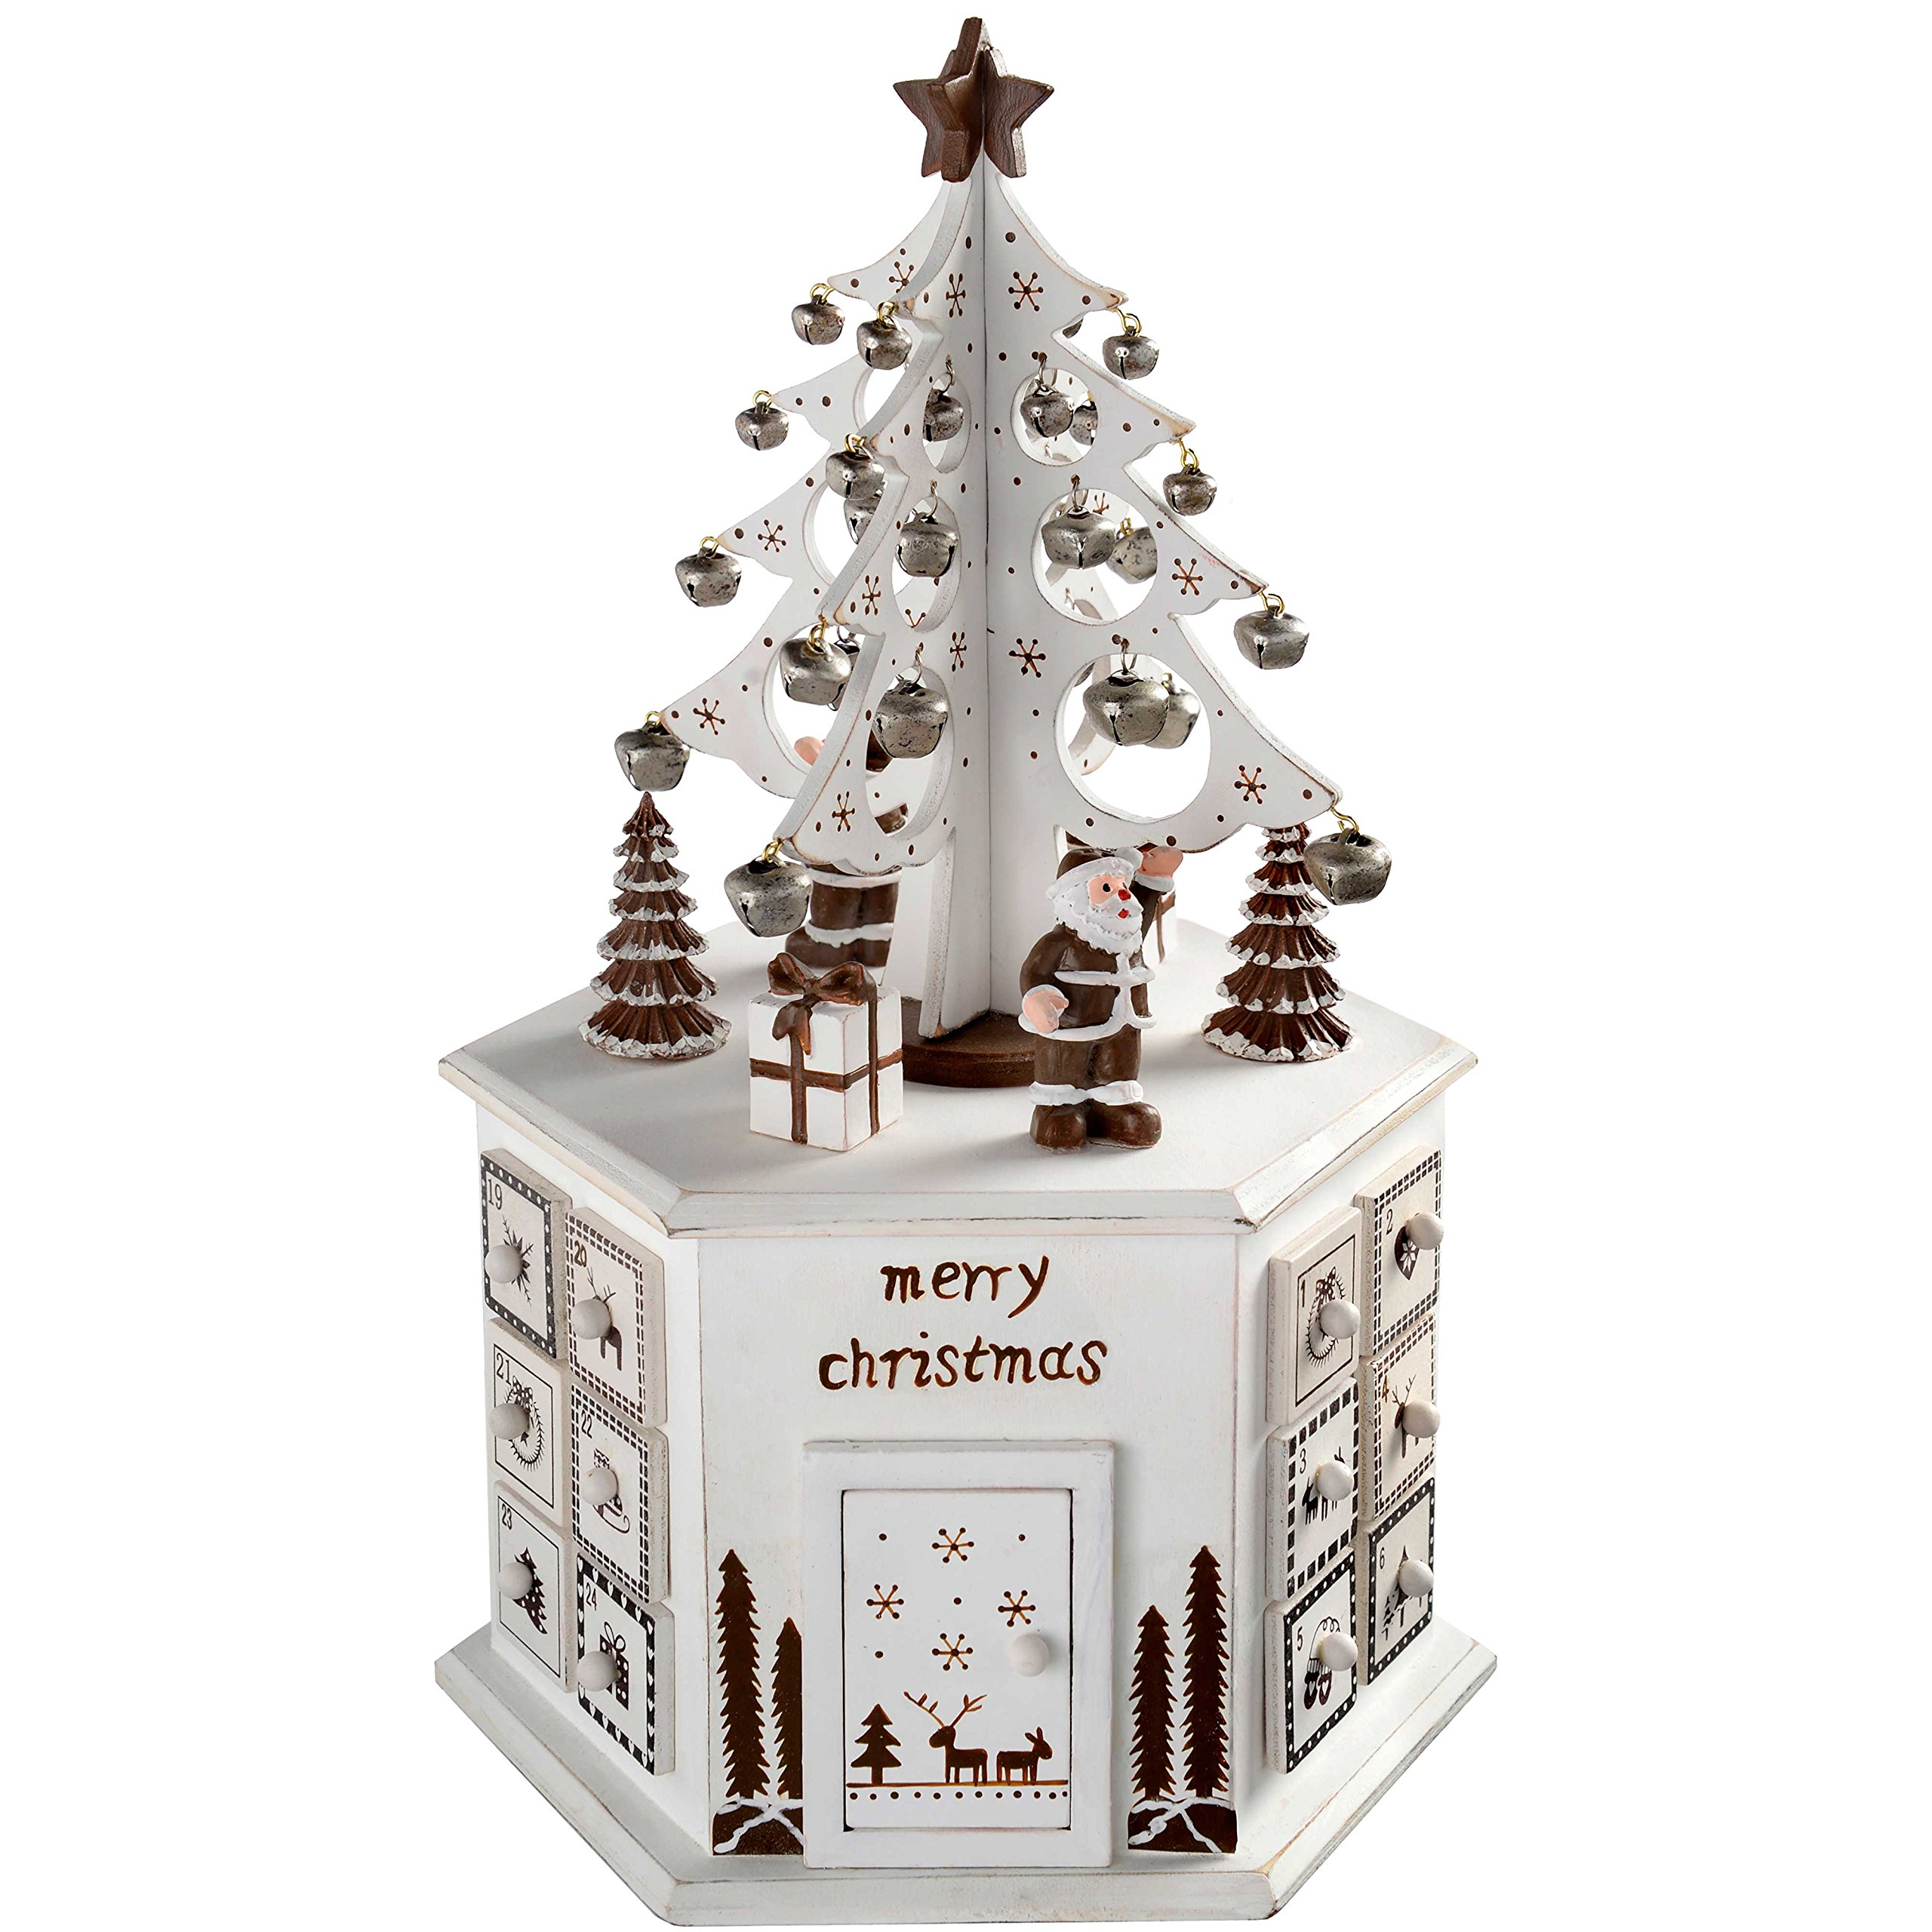 WeRChristmas Wooden Tree Advent Calendar Tower Christmas Decoration, 36 Cm - White by WeRChristmas (Image #1)